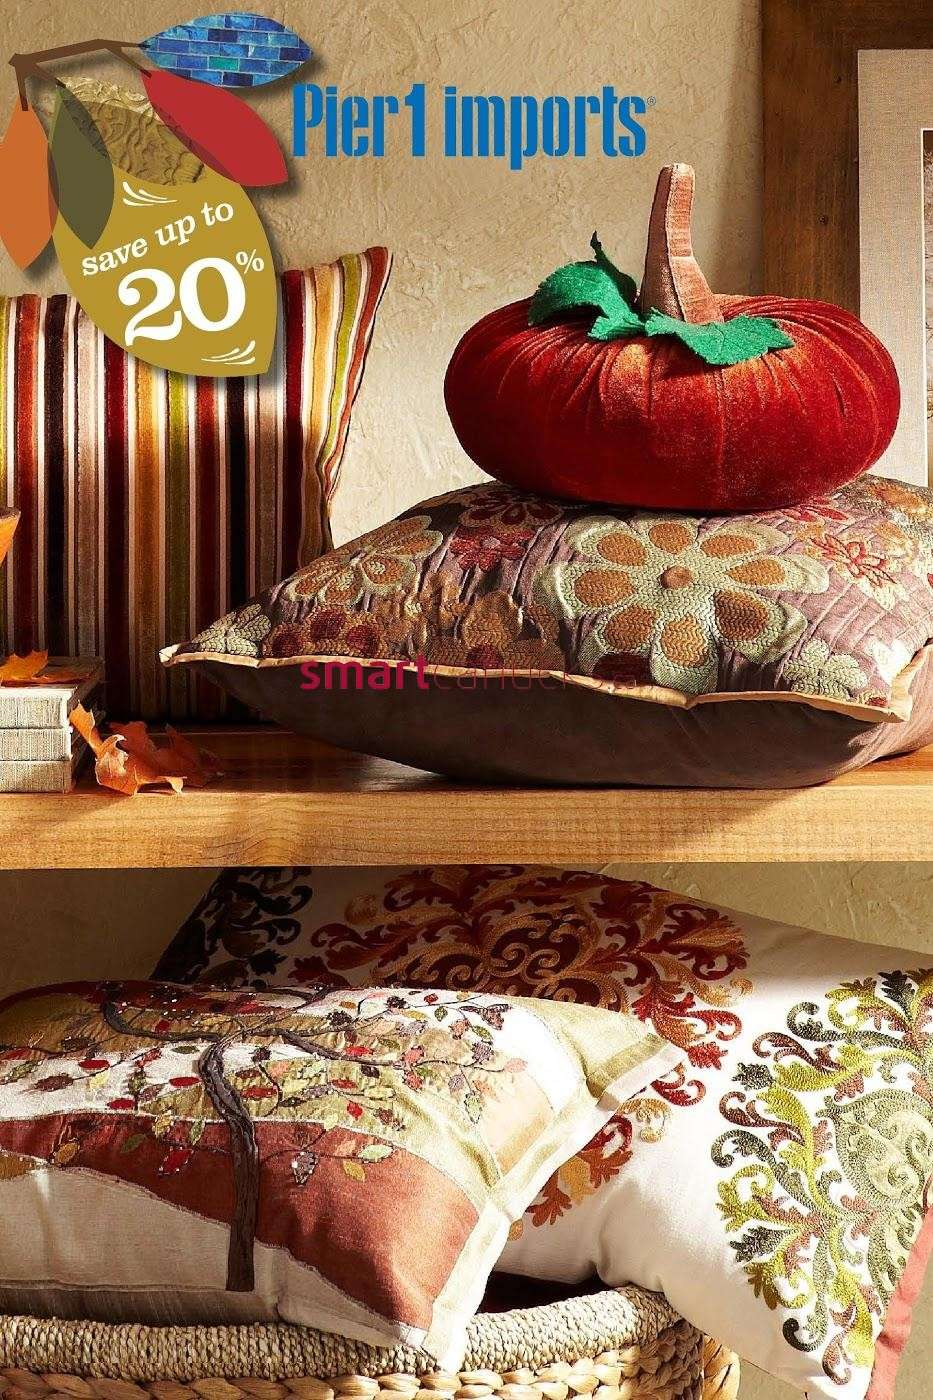 Pier 1 Imports flyer October 7 to November 3. Pier 1 Imports Canada Flyers